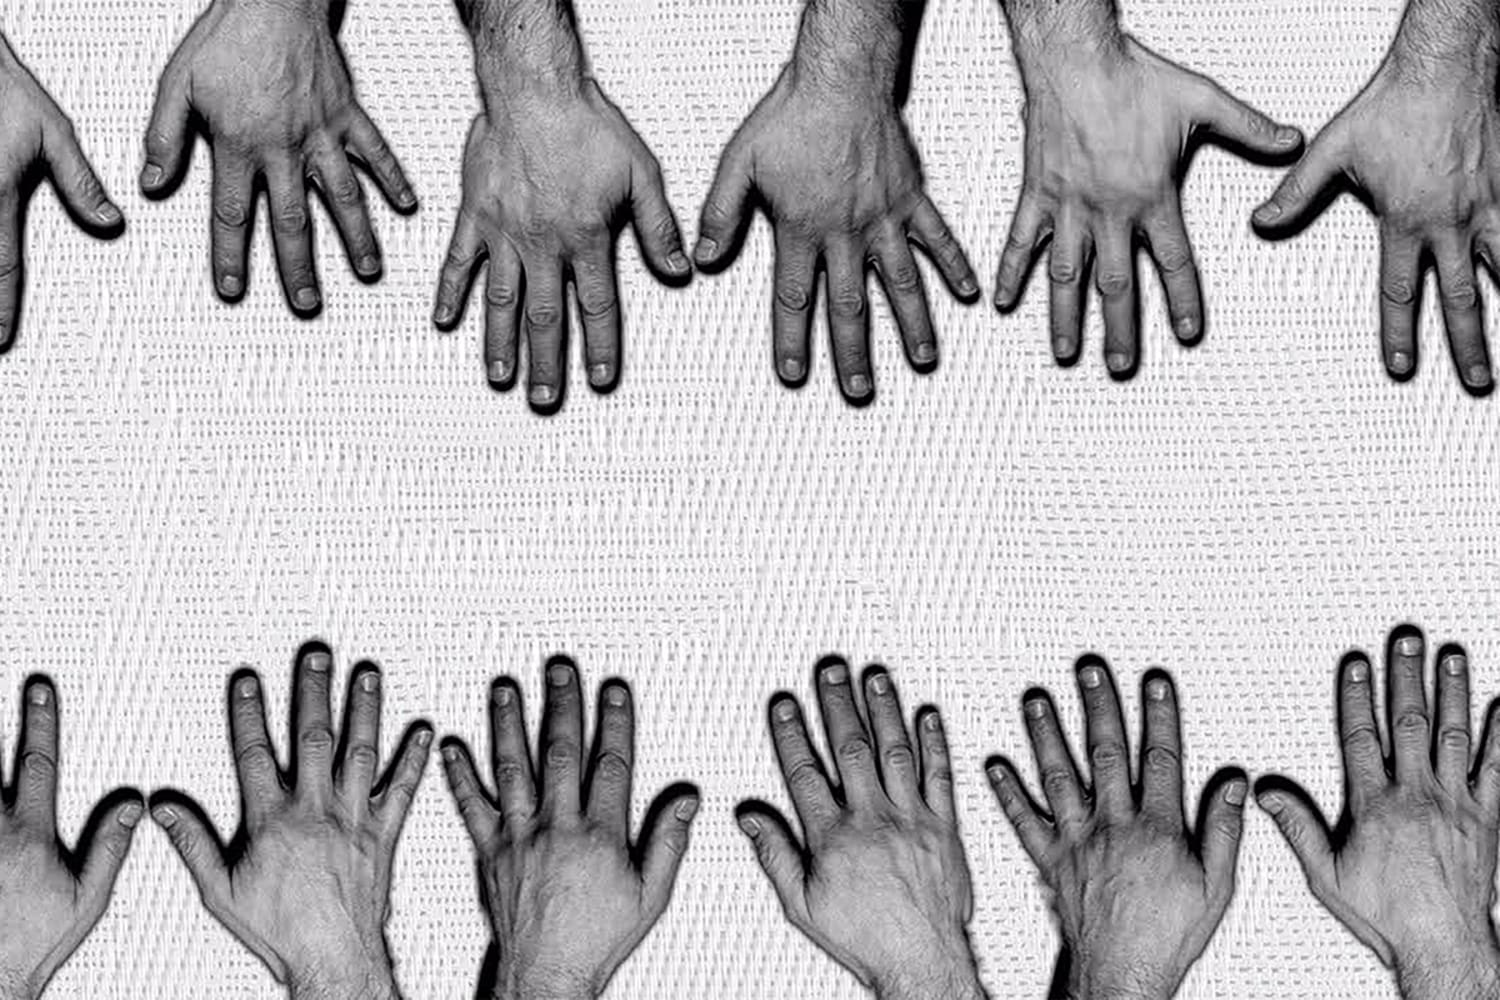 Hands at the Séance sound and darkness immersive performance at the Edinburgh Fringe Festival Image Fiona Rita Blyth